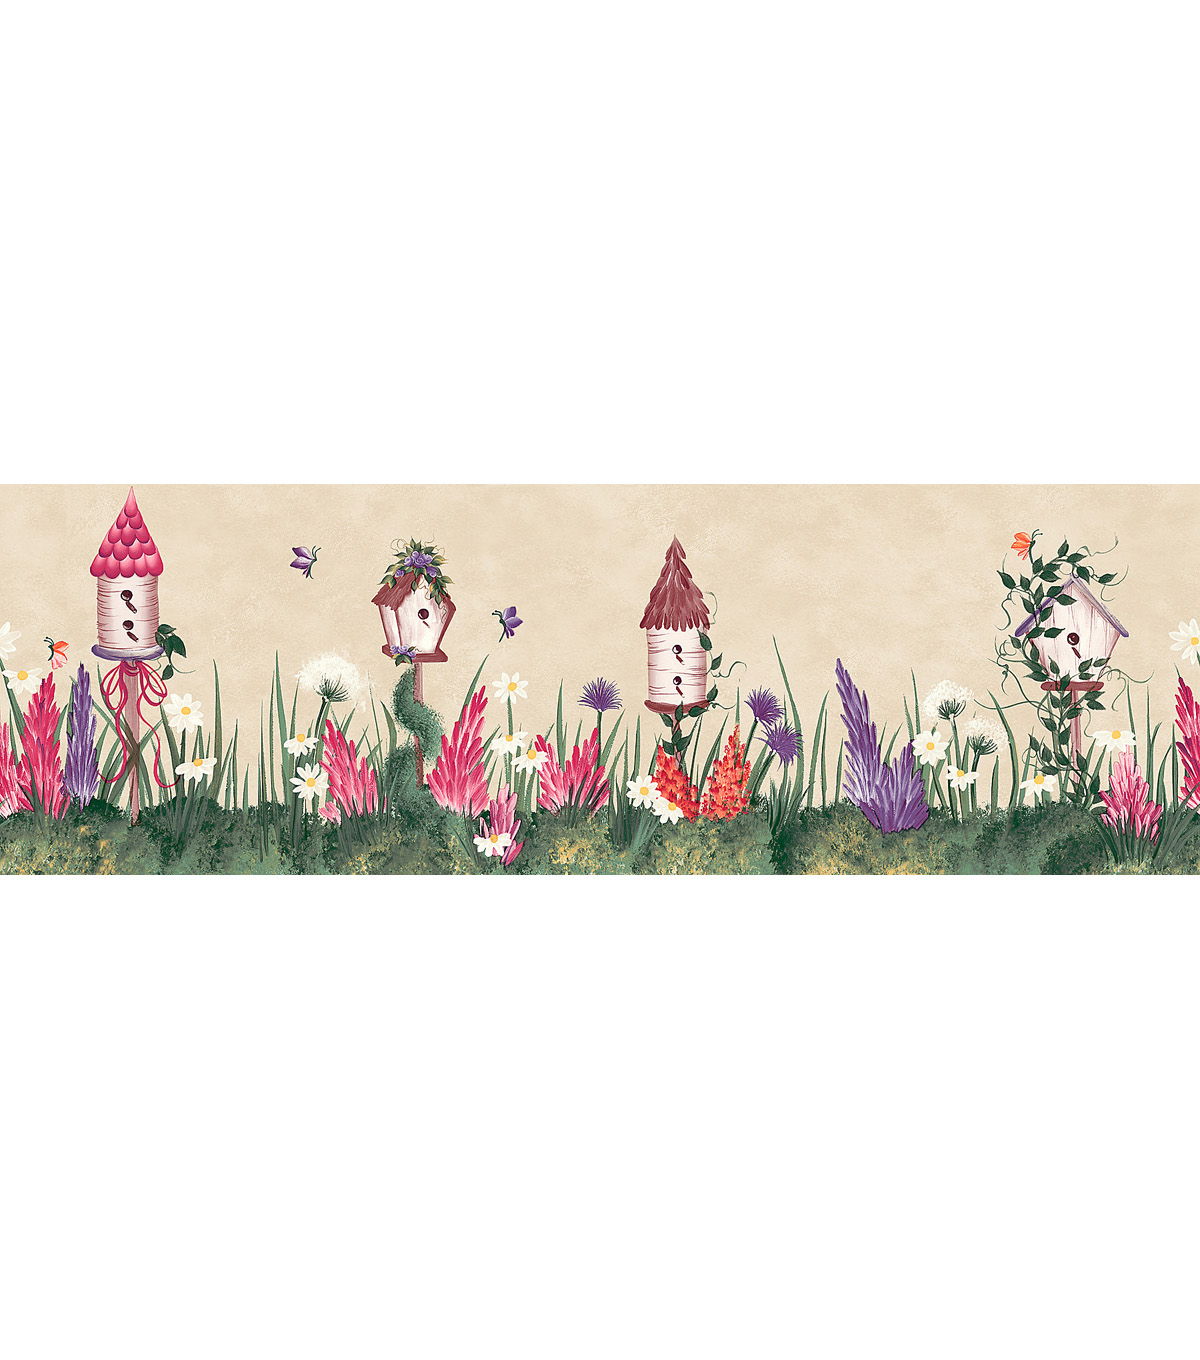 Bird House Floral Wallpaper Border, Multicolor Sample